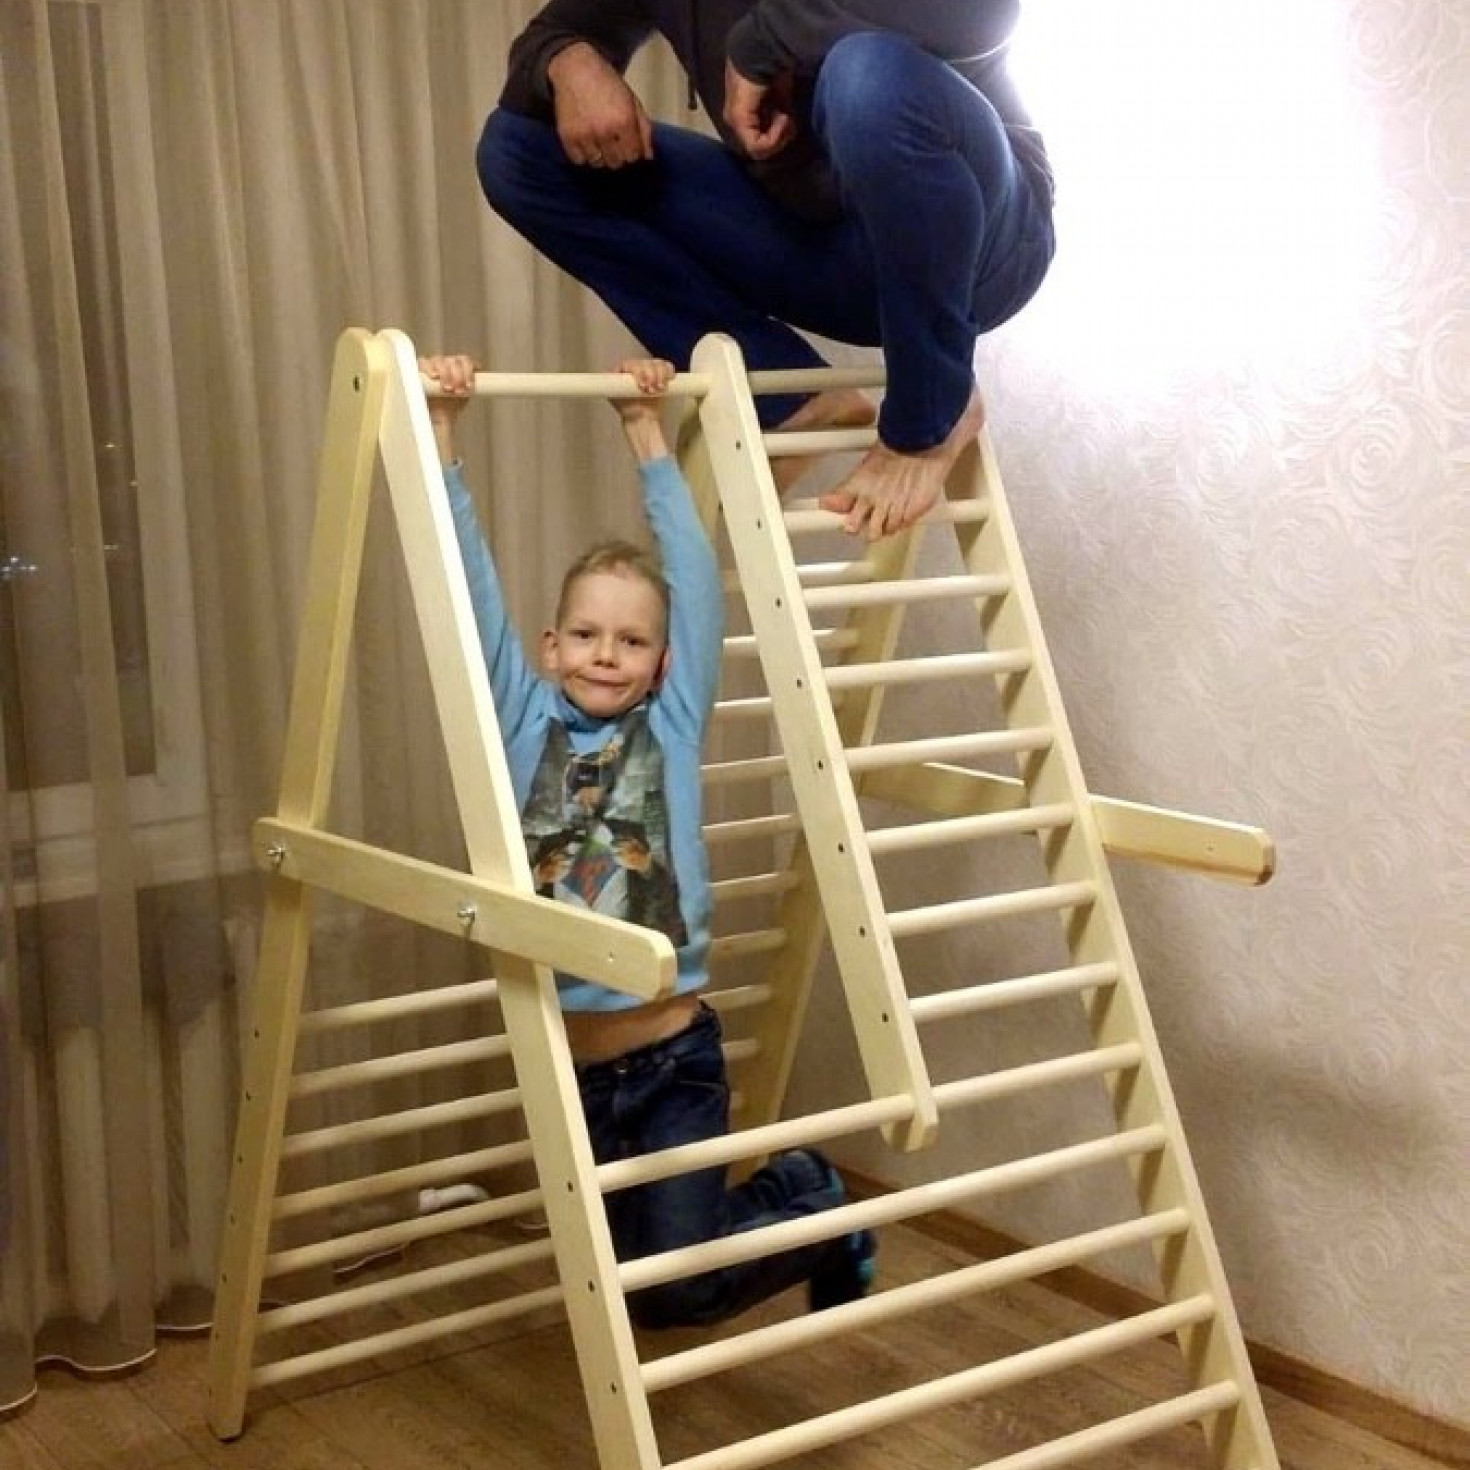 A climbing ladder suitable for toddlers and children up to 8 years of age